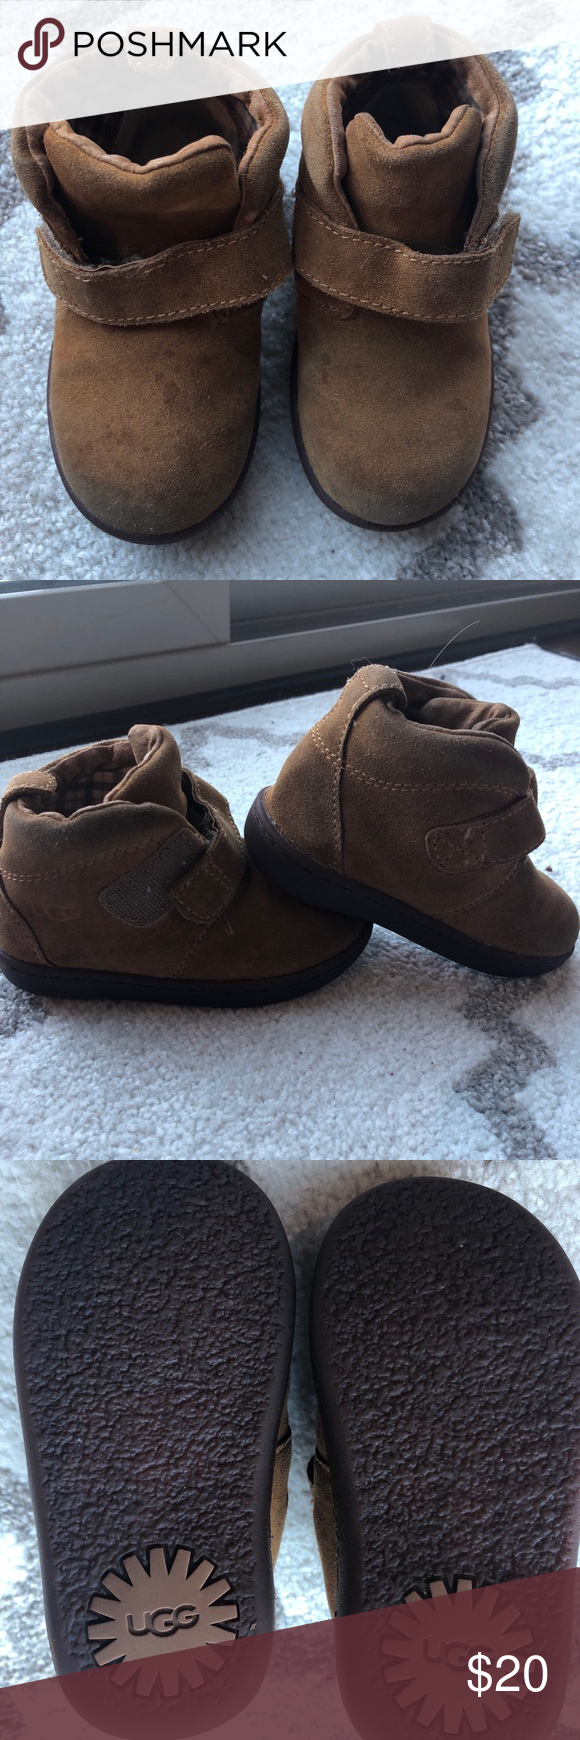 Toddler boy UGG boots Velcro size 7